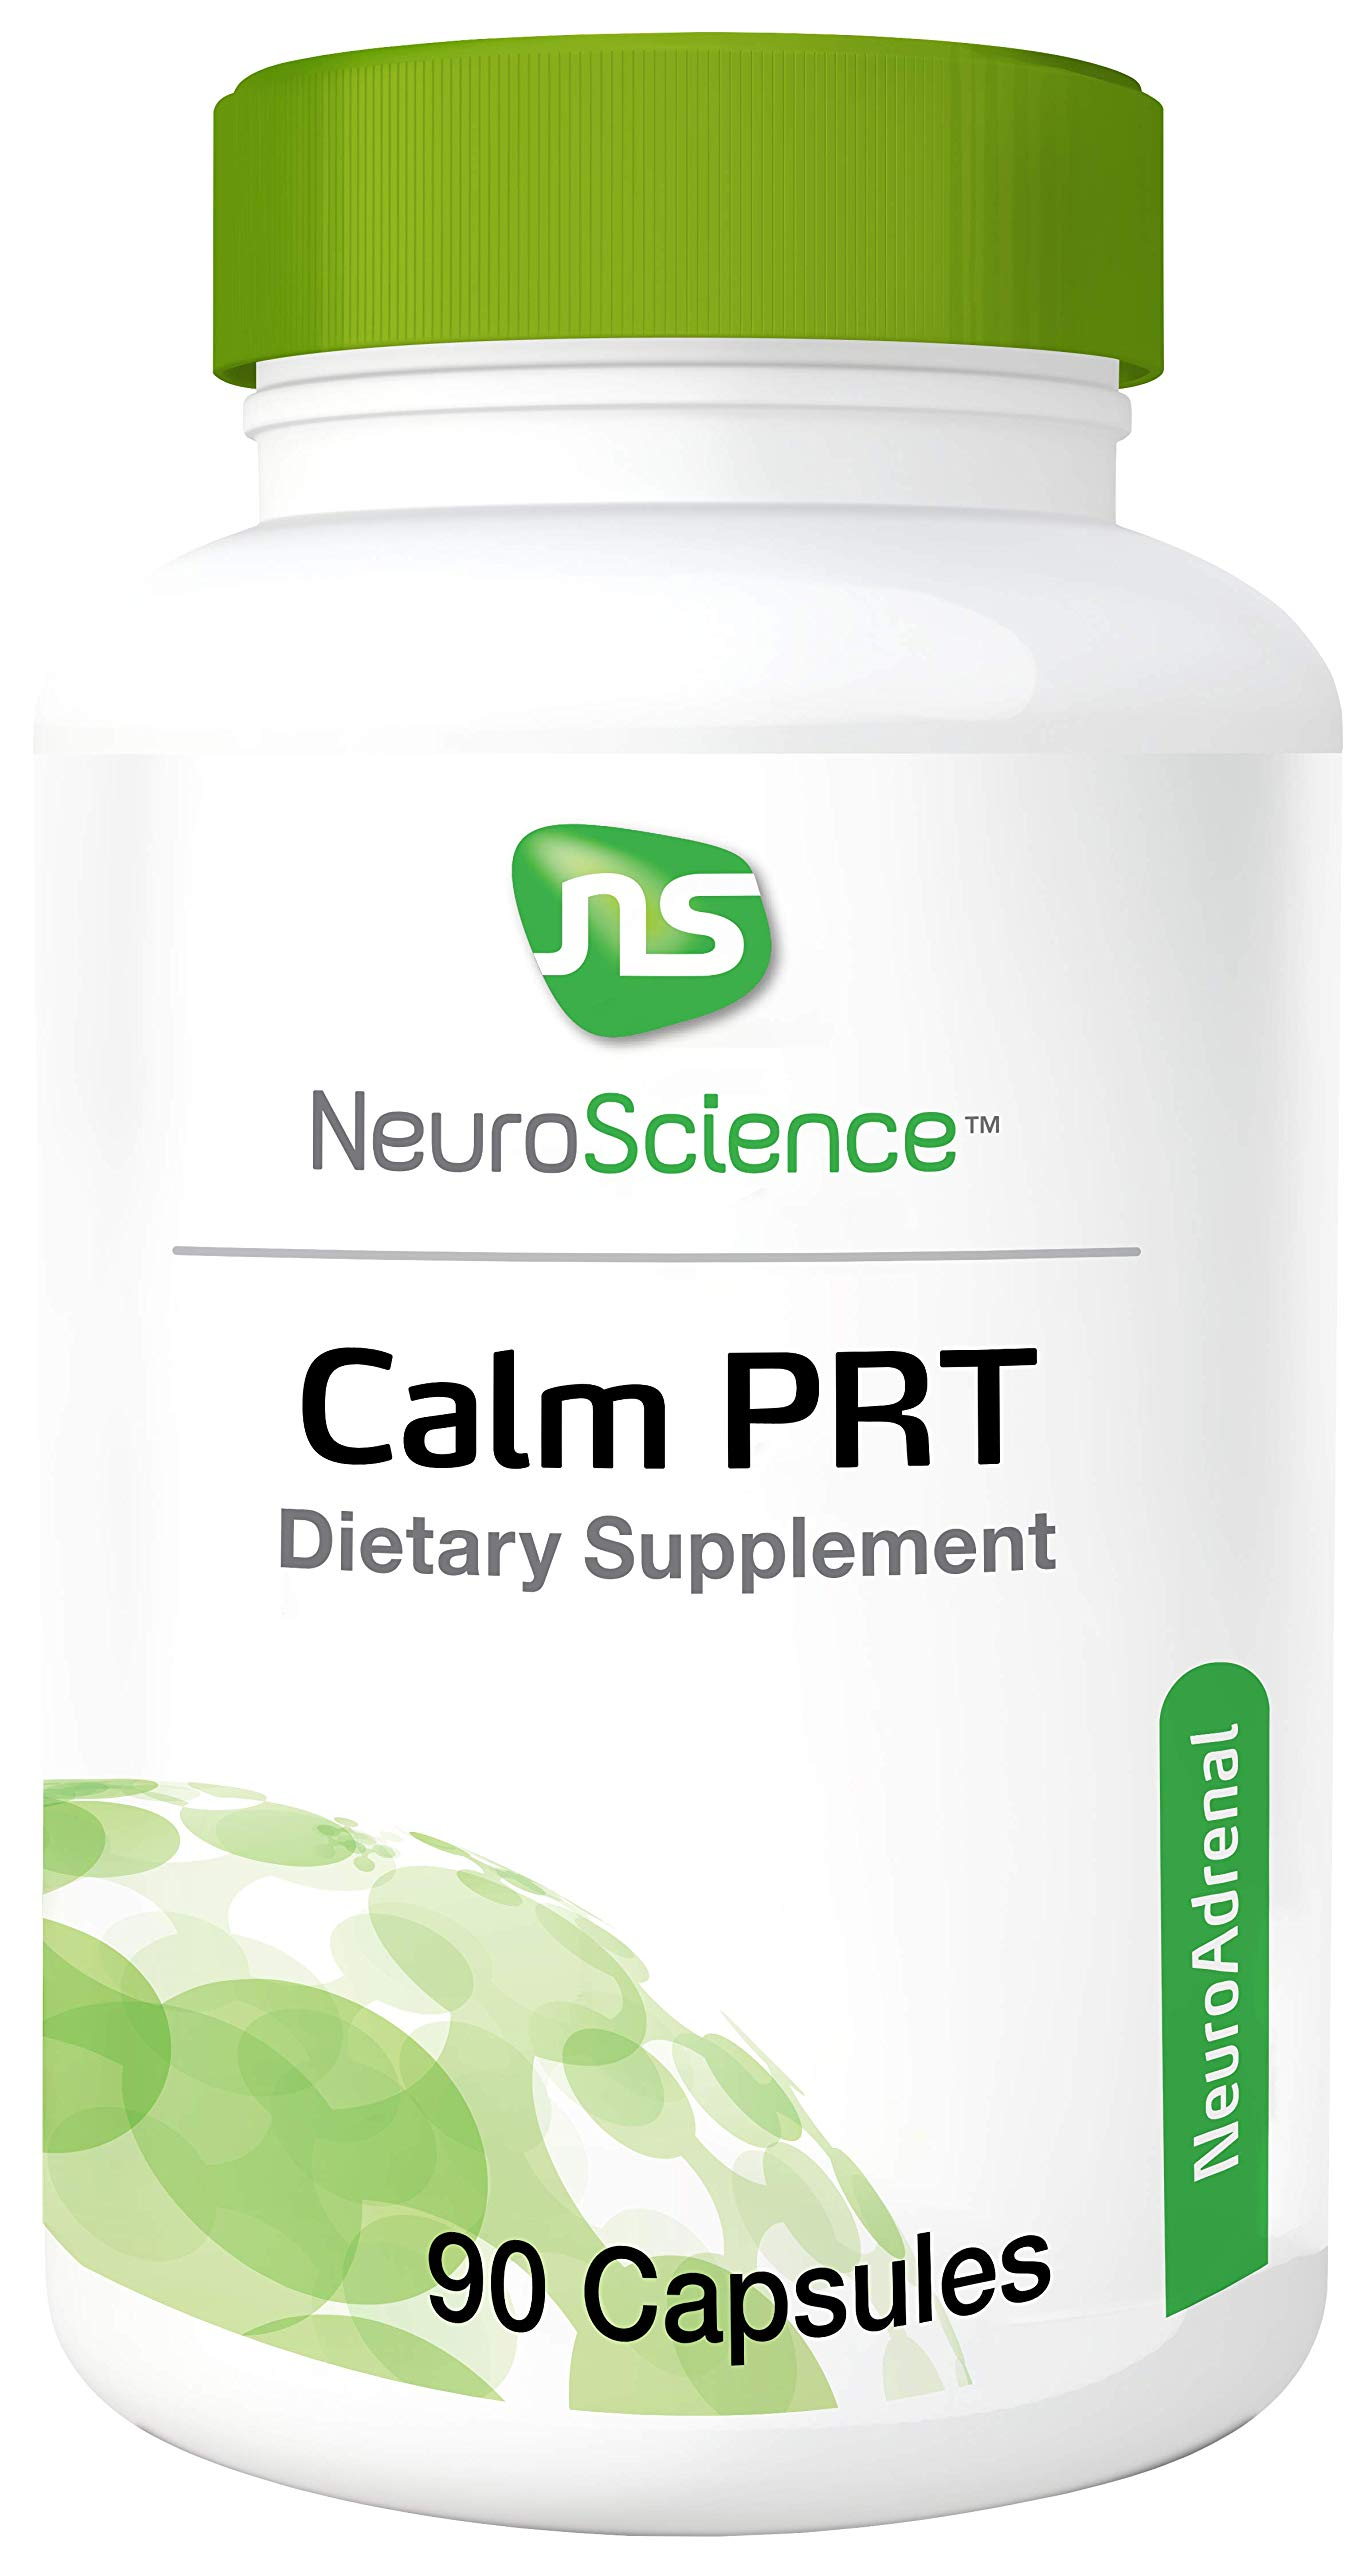 NeuroScience Calm PRT - Rhodiola Adrenal Support Complex for Sleep + Reducing Anxiousness, Cortisol Focused Blend (90 Capsules)